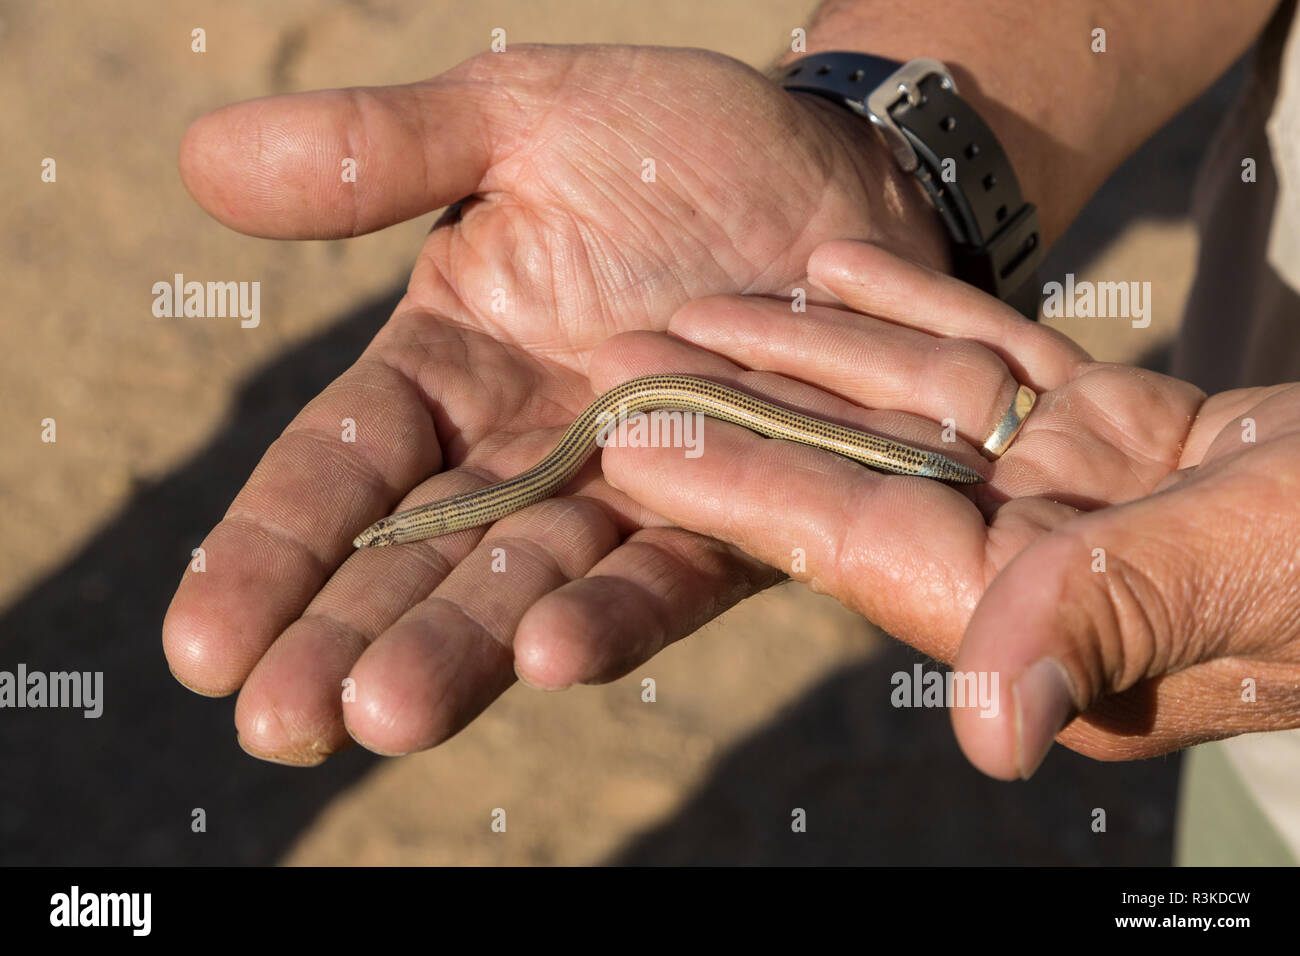 Man holds a FitzSimon's burrowing skink (Typhlacontias brevipes) in the dunes near Swakopmund, Namibia. - Stock Image